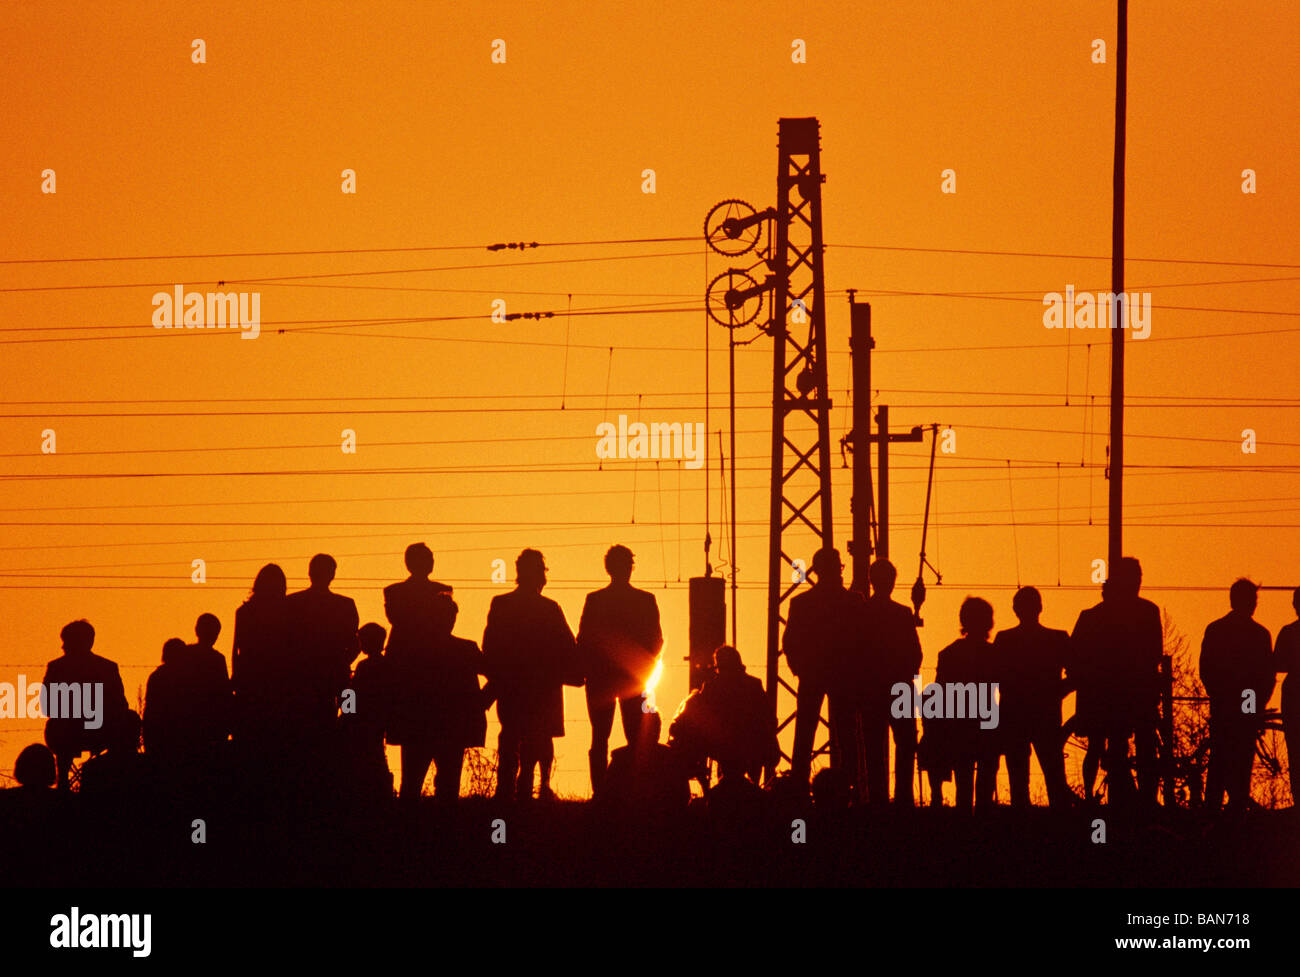 spectators listening to openair event at sunset - Stock Image